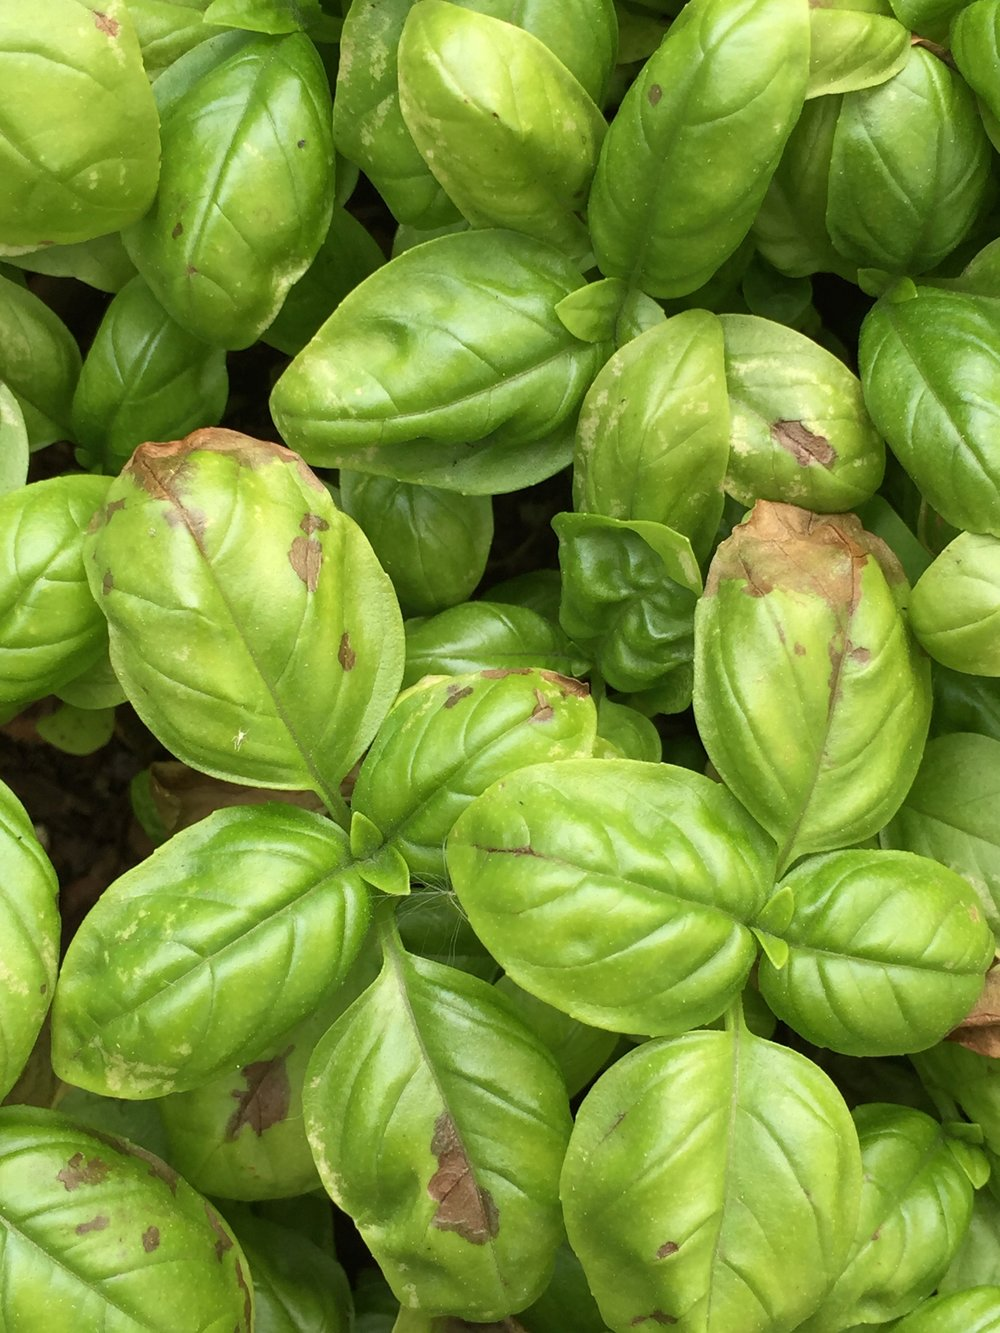 the cold nights are taking their toll on the basil